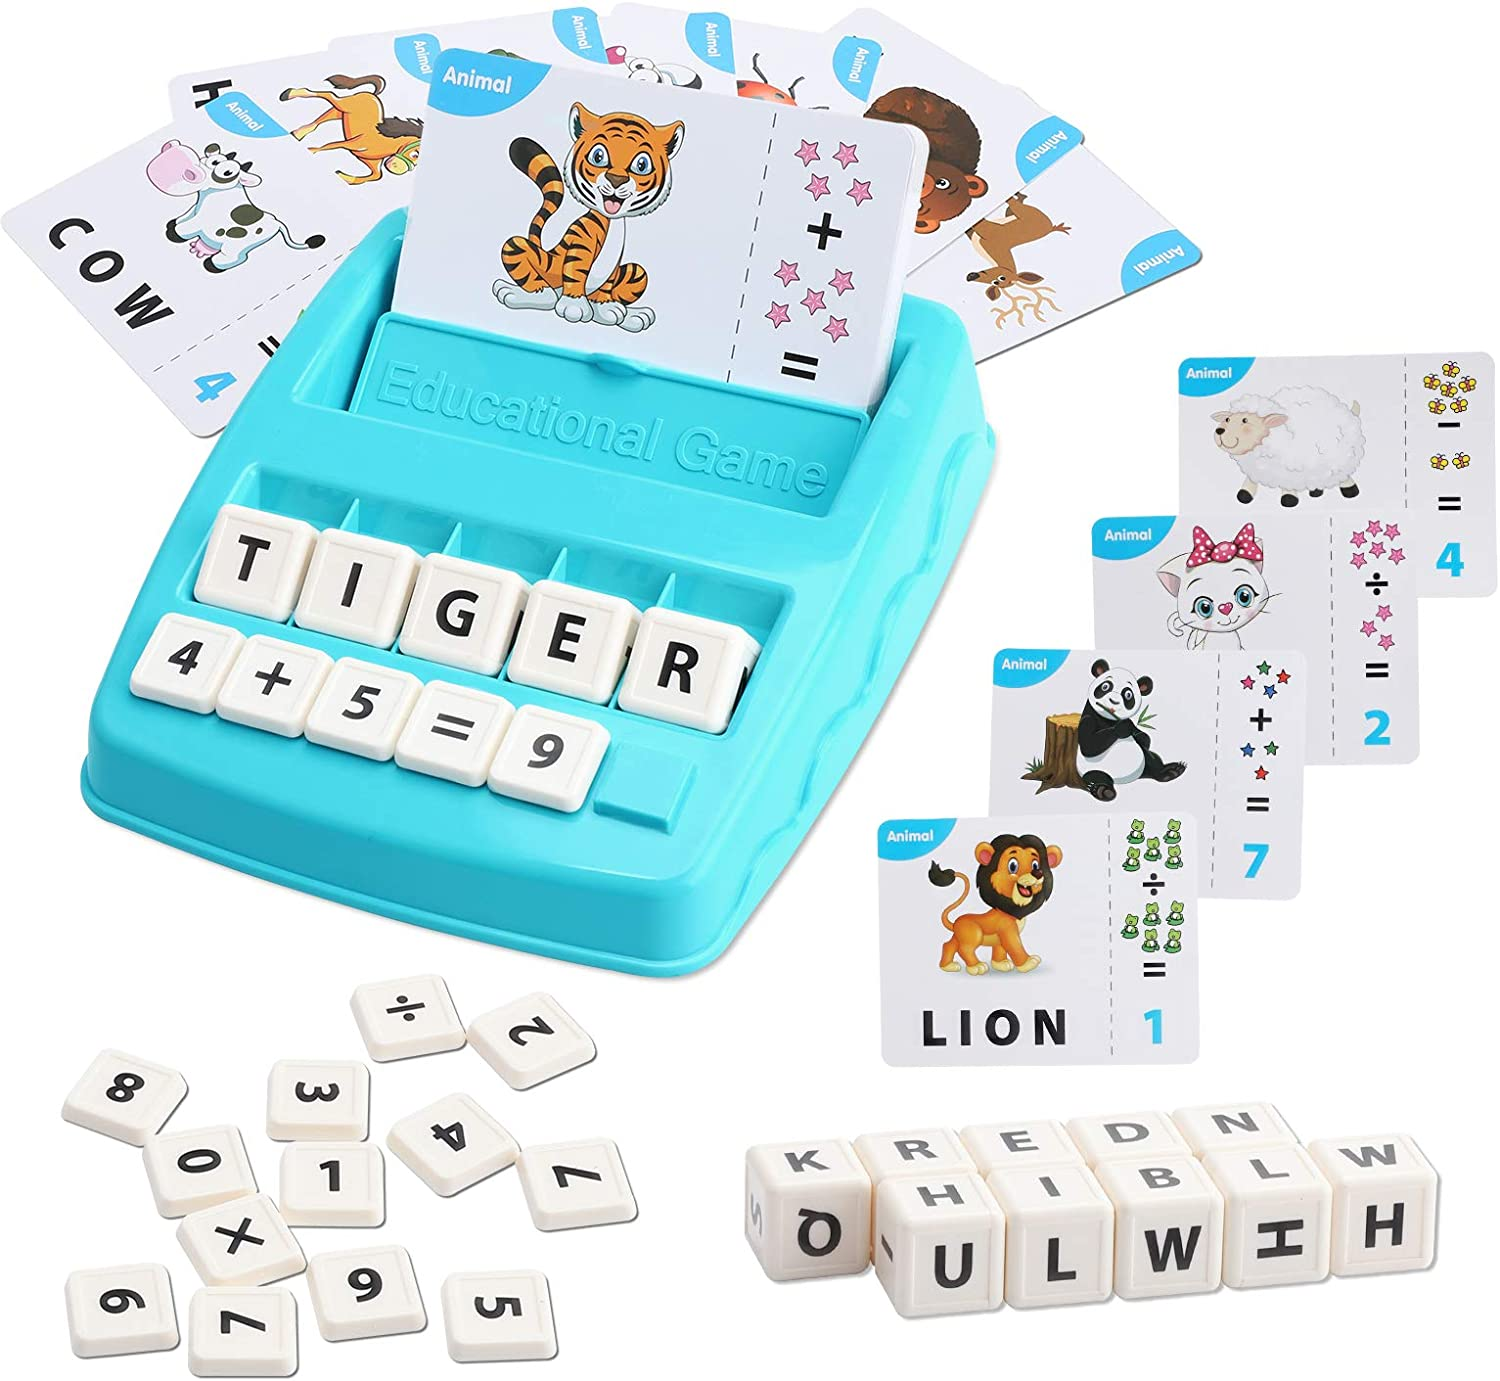 Blue WOMIR Educational Spelling Game Matching Letter Games for Kids Ages 3-8 Year Preschool Reading Learning Toys Alphabet Math Sight Word Kindergarten Memory Game Flash Cards for Toddlers